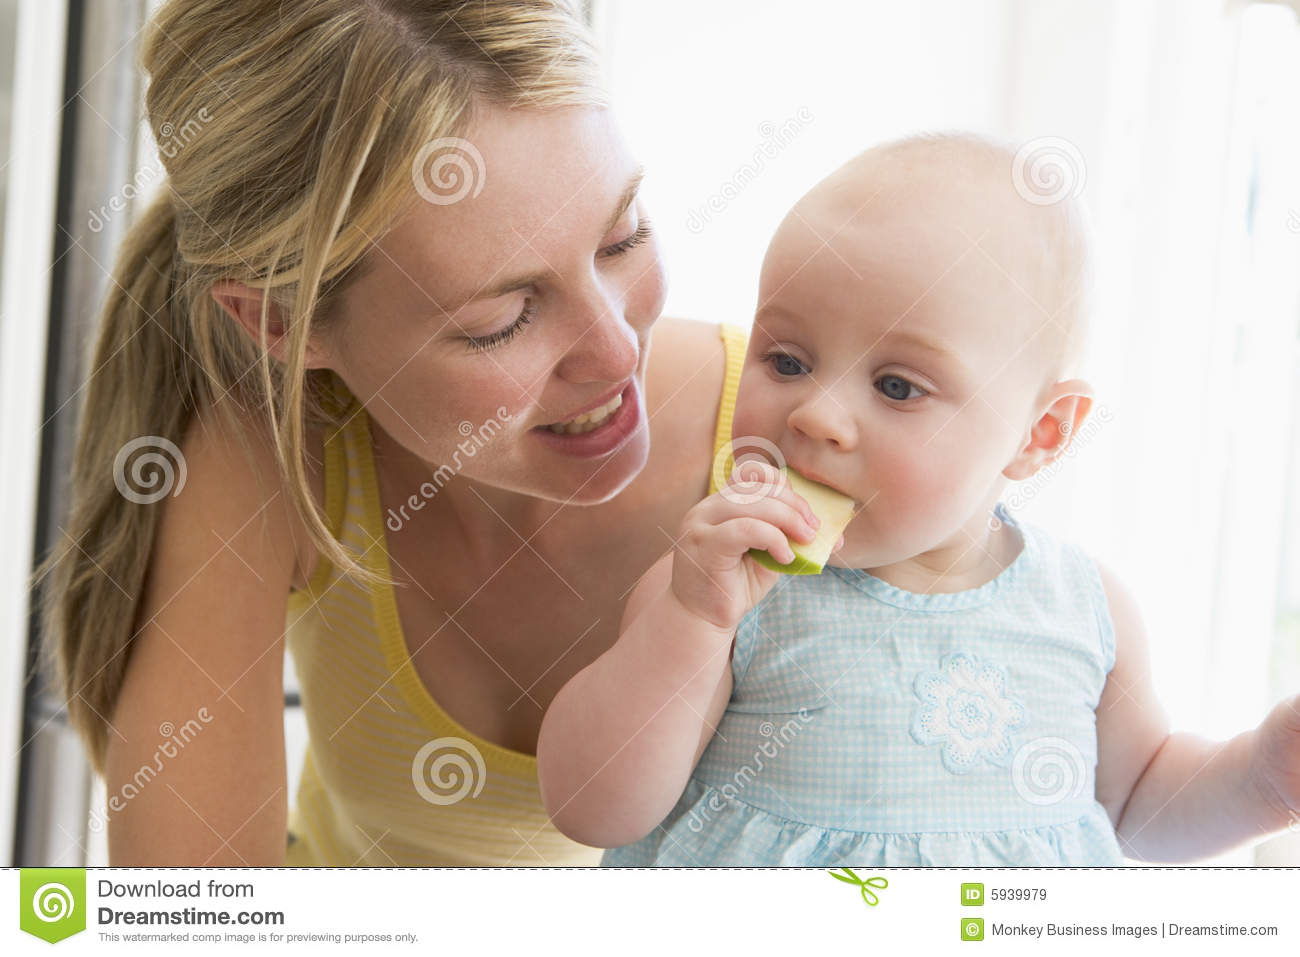 Mother and baby eating apple